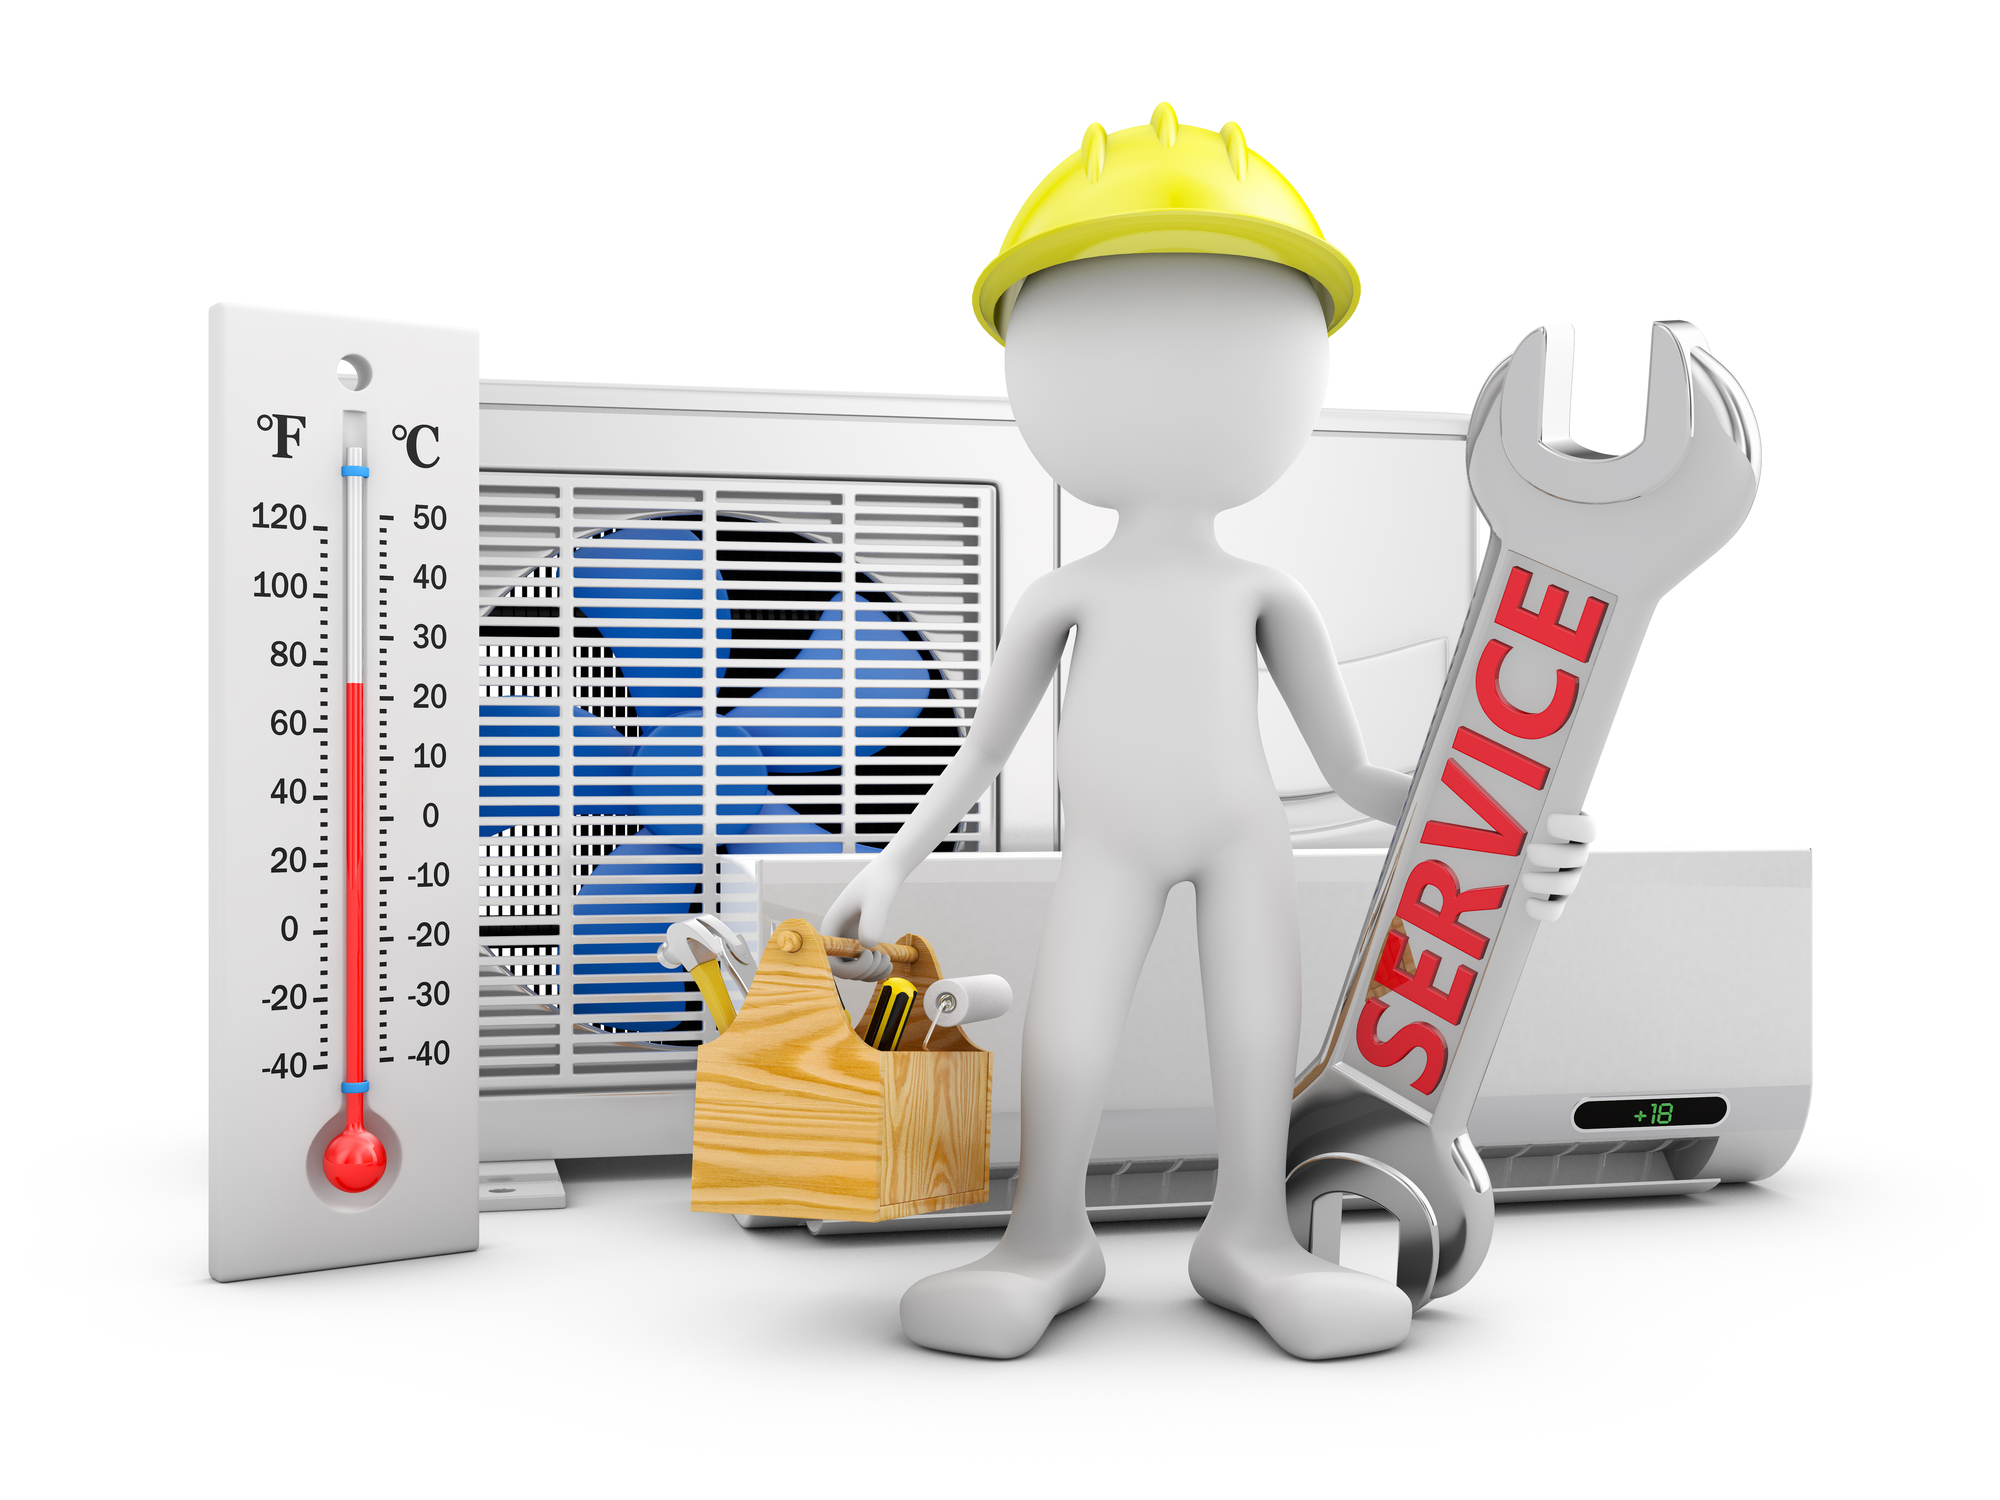 Proudly Serving Houston Since 1970 - Extend the lifetime of your a/c system by 25% with reich's comprehensive service plan and guarantee